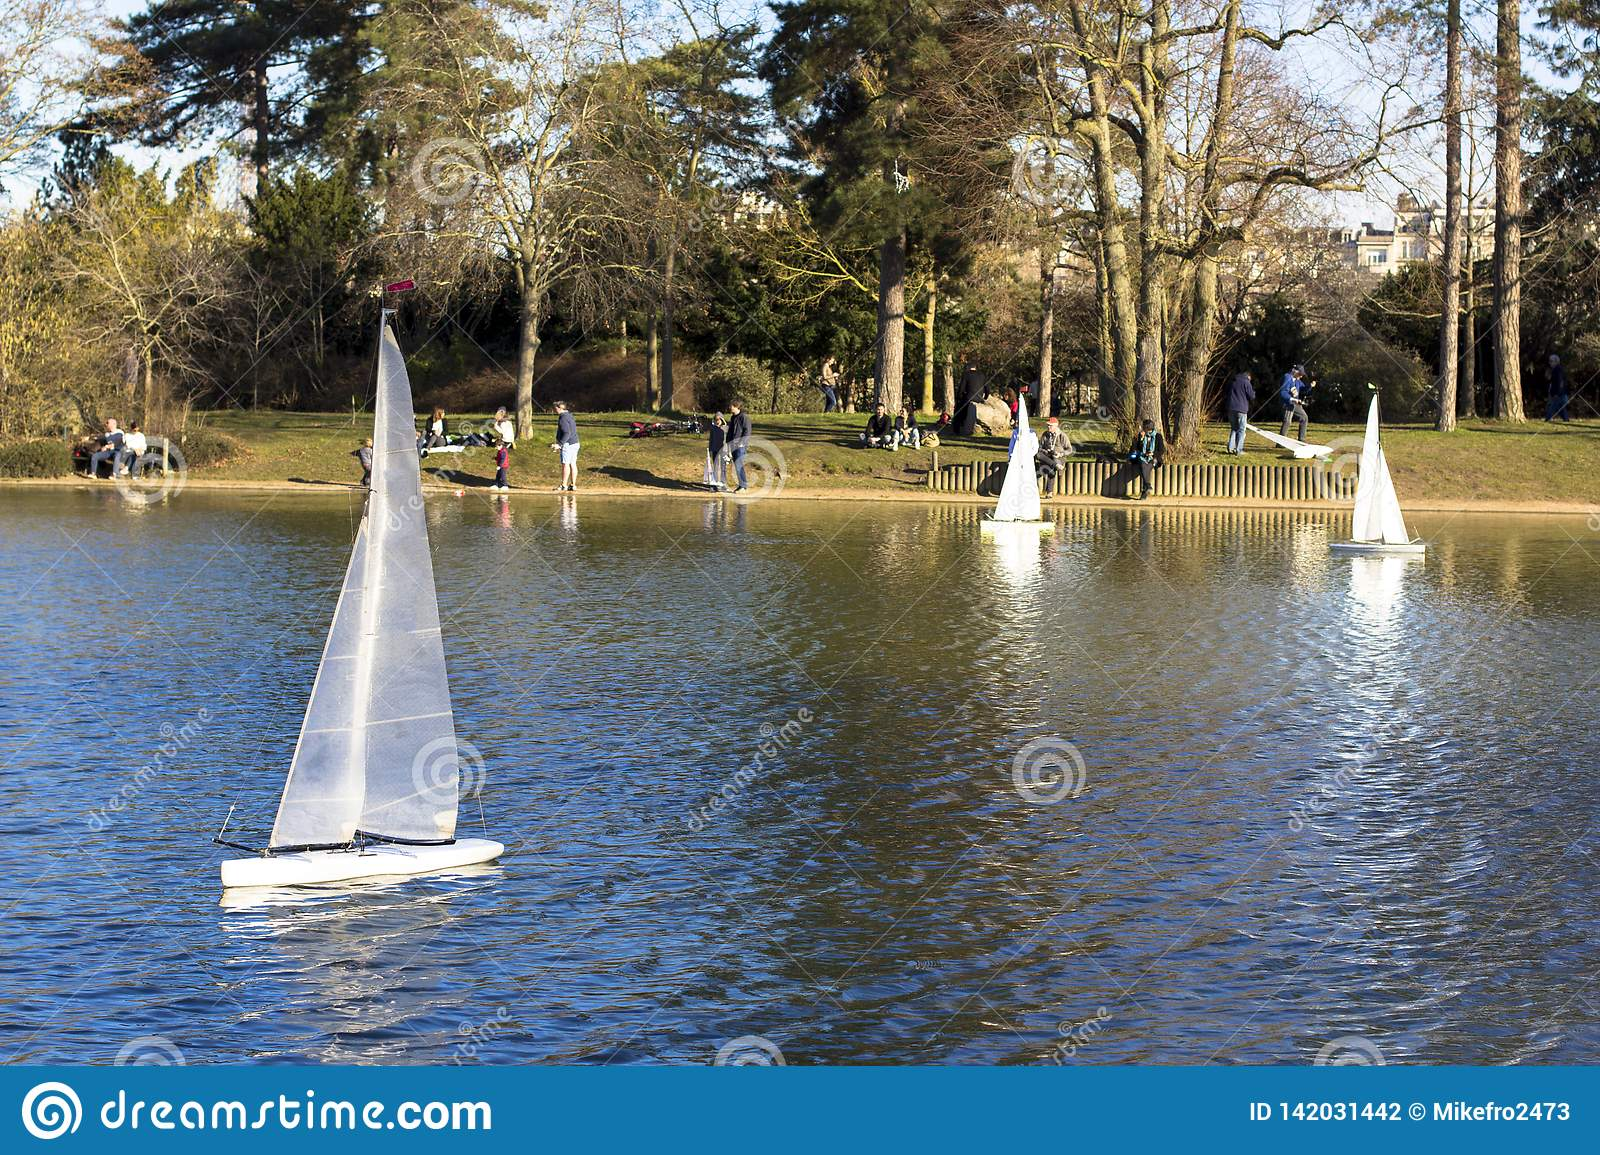 Model Sailboats In A Pond In A Park In Paris  Birds Fly